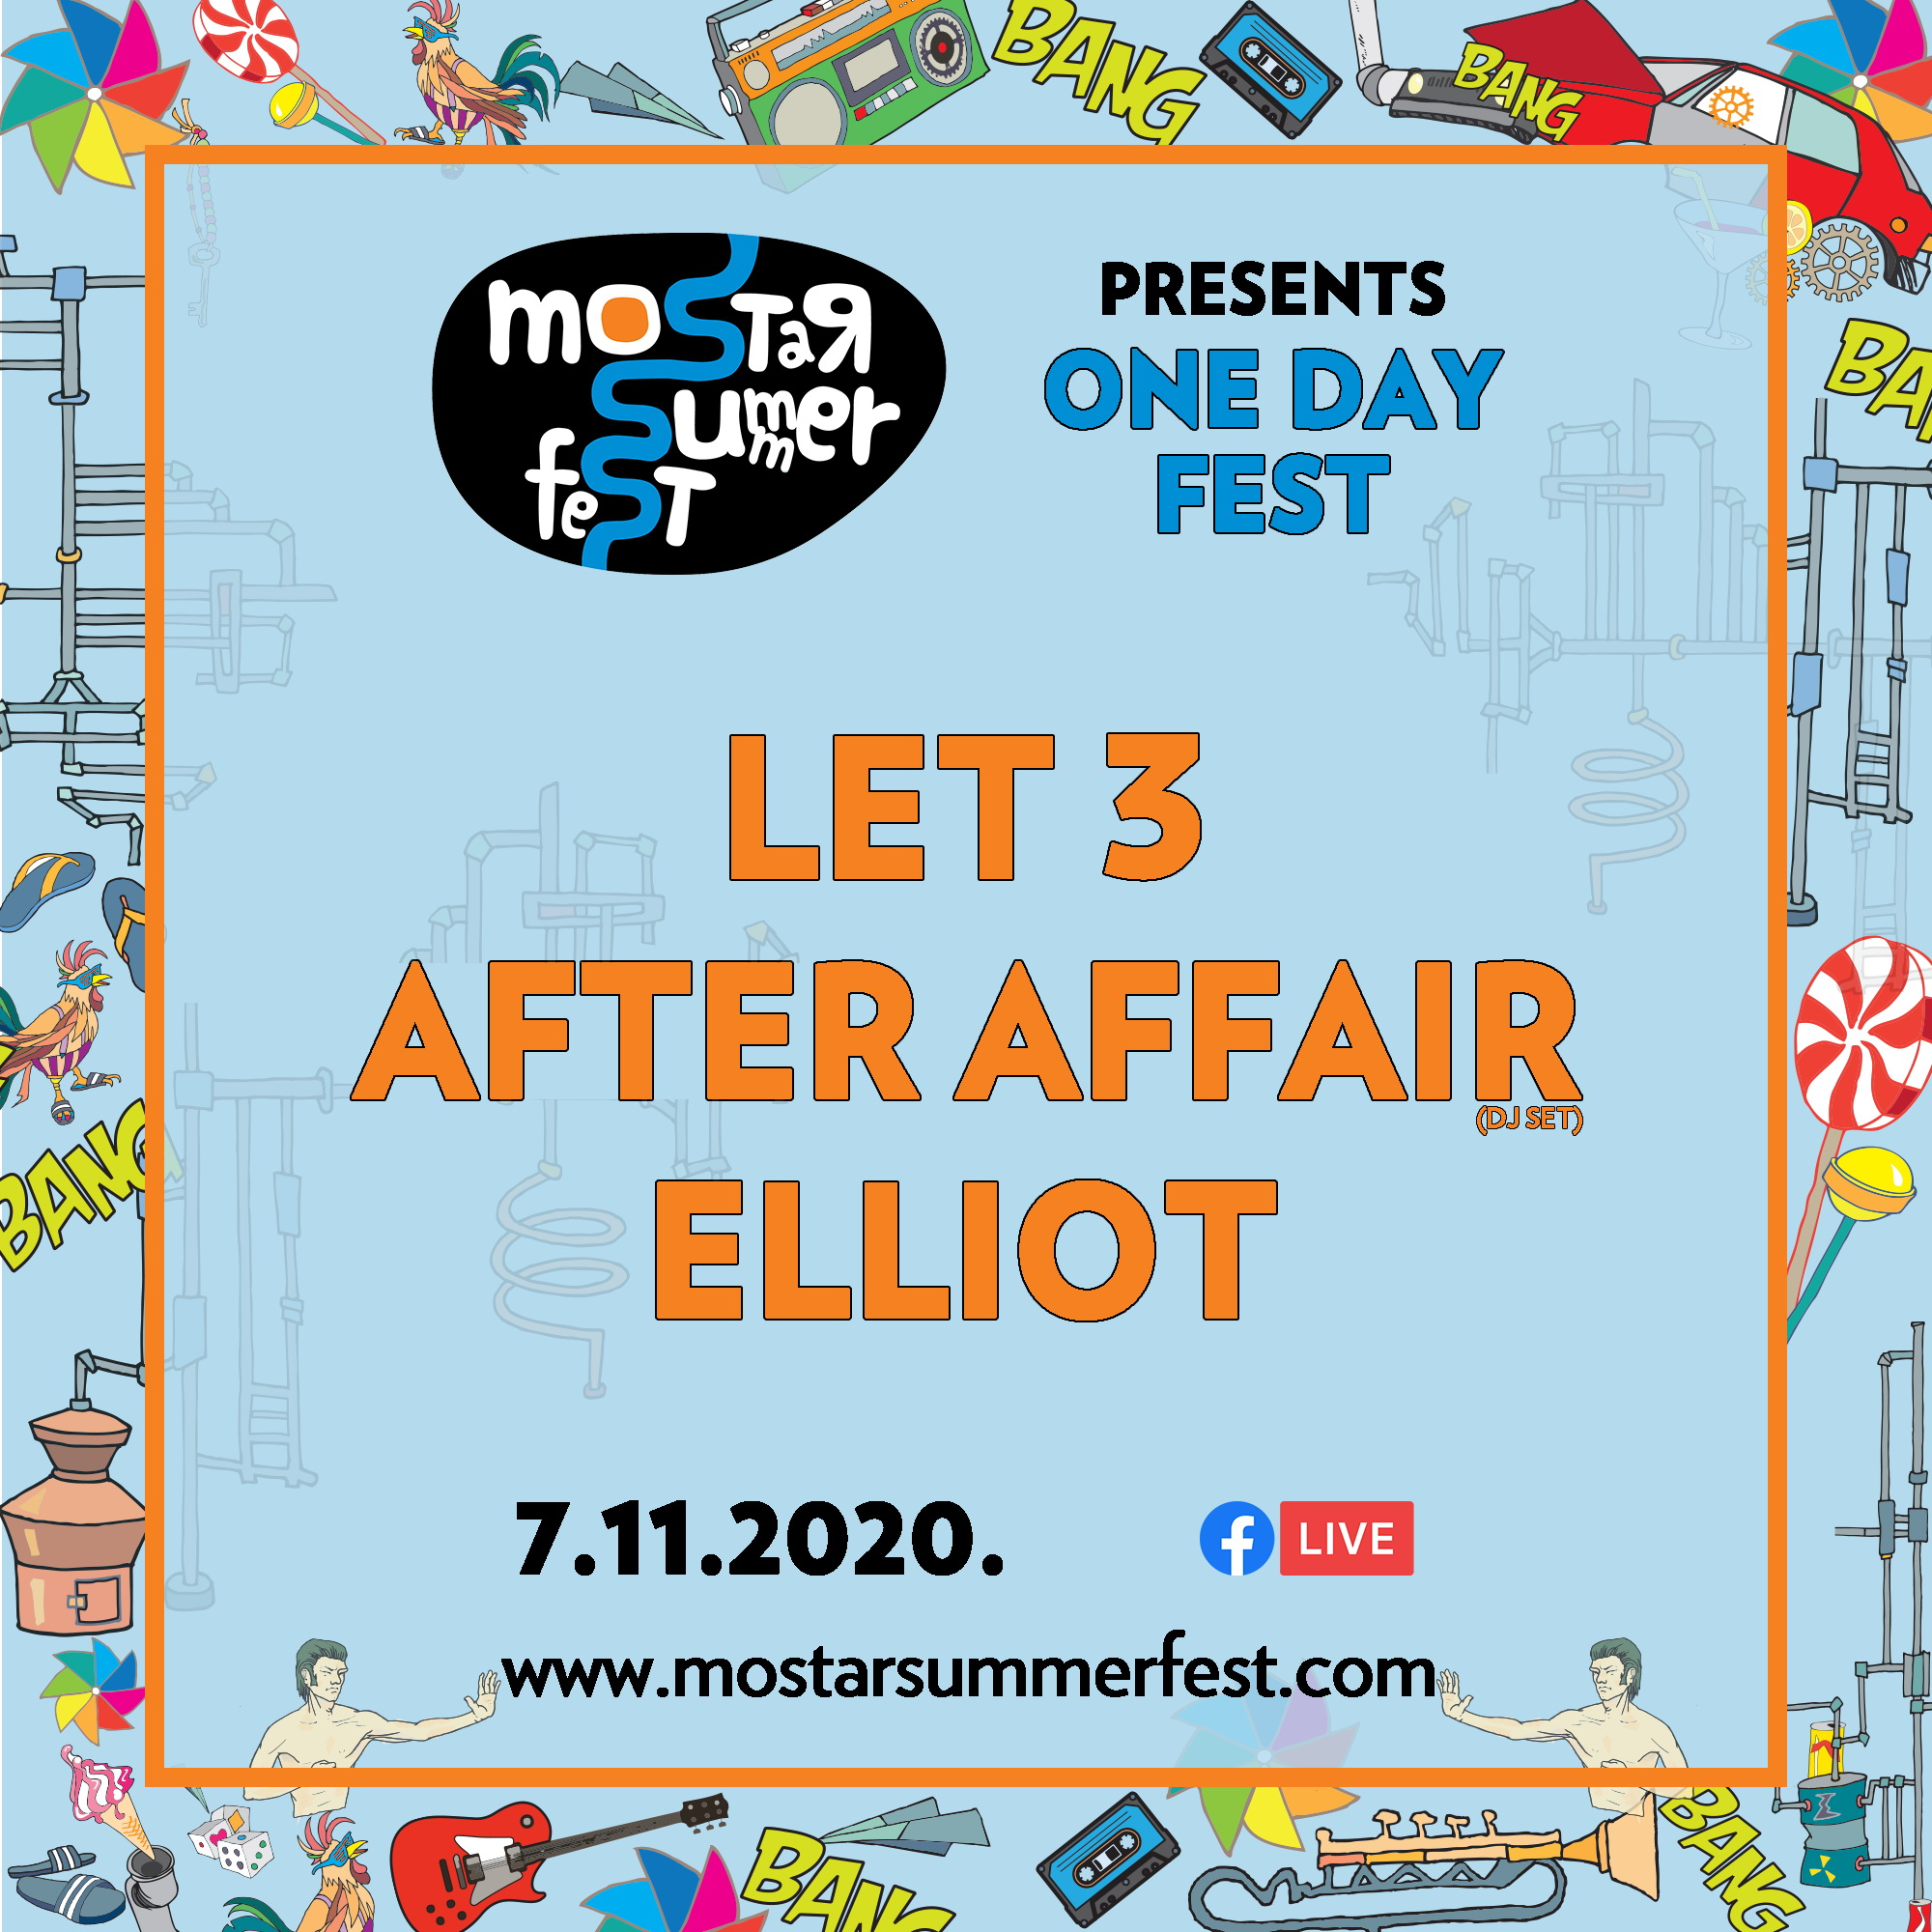 Mostar Summer Fest najavljuje One Day Fest Edition: Nastupaju Let 3, After Affair i Elliot